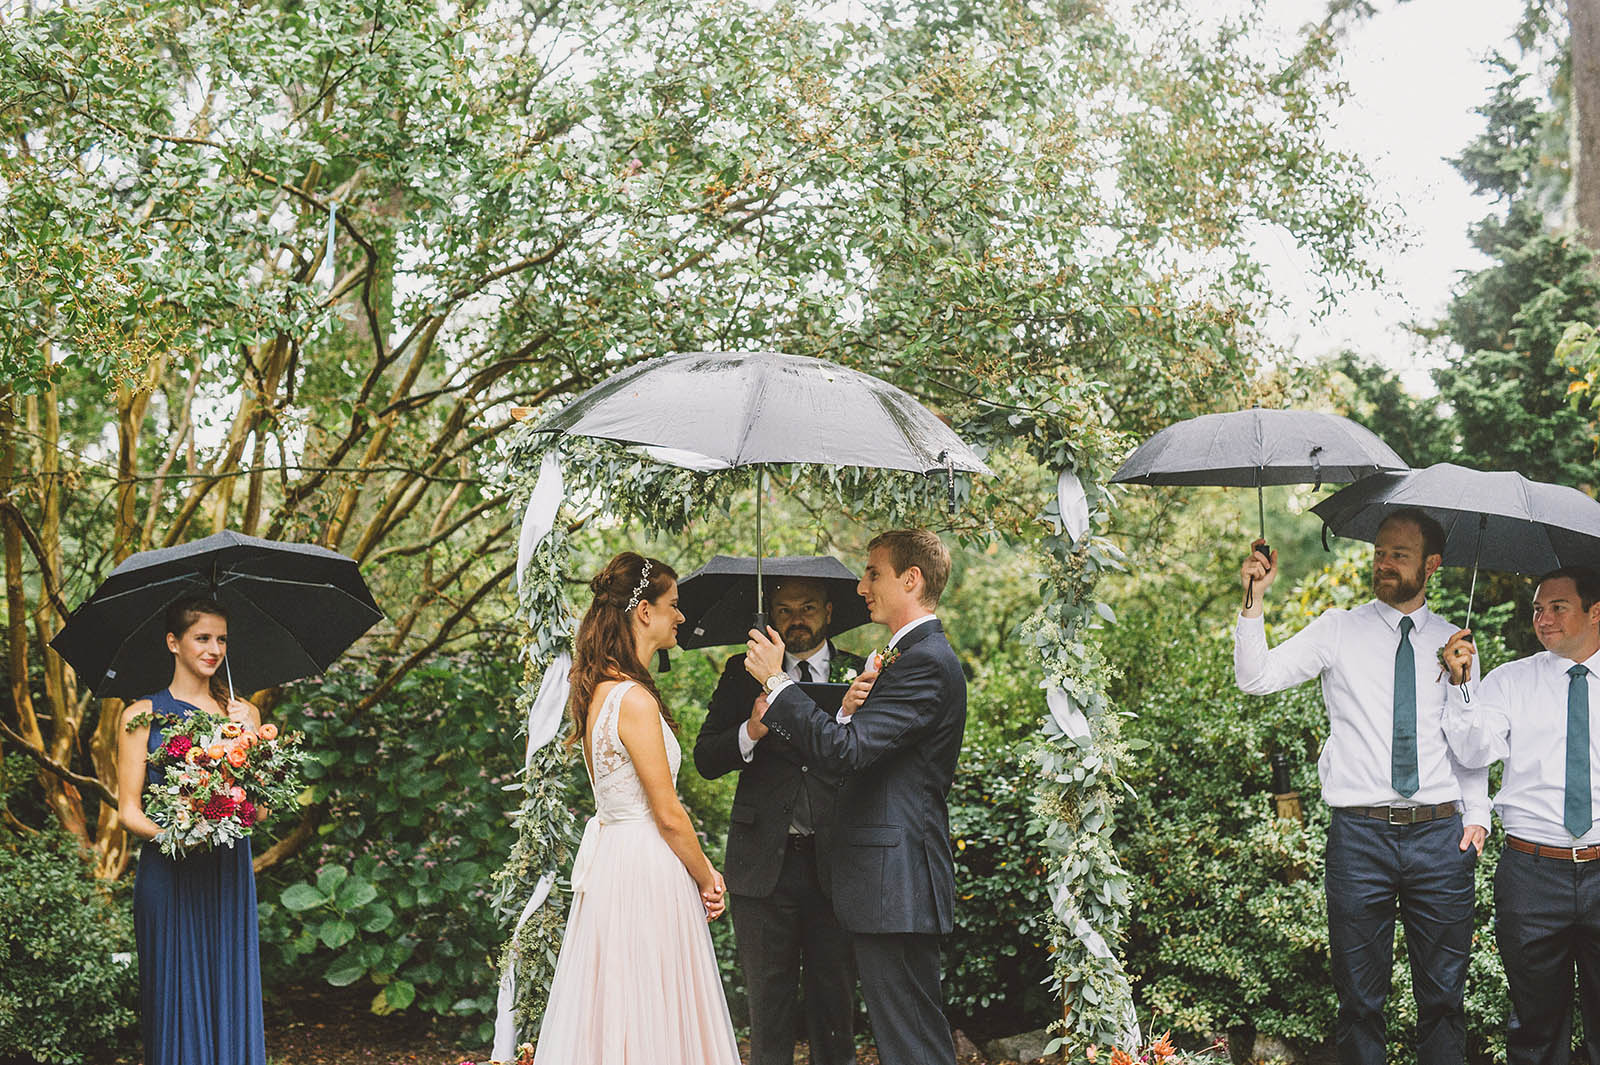 Wedding party holding umbrellas during a rainy Crystal Springs Rhododendron Garden wedding ceremony